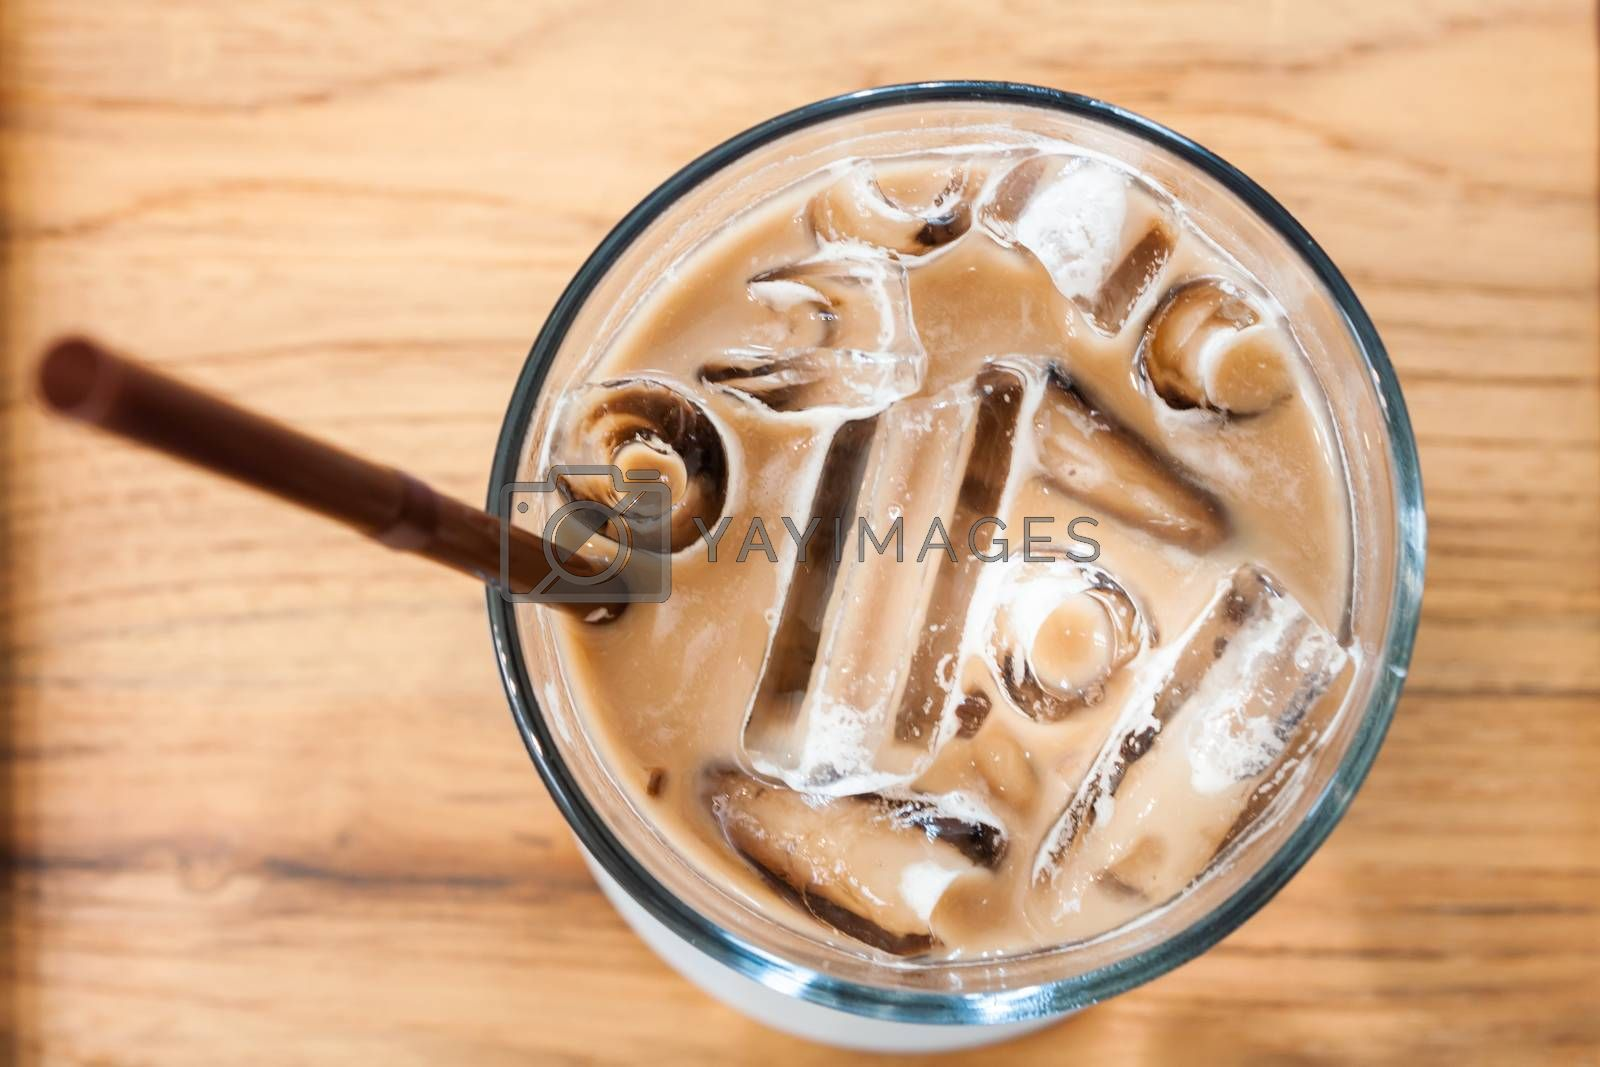 Iced coffee in coffee shop on wooden table, stock photo